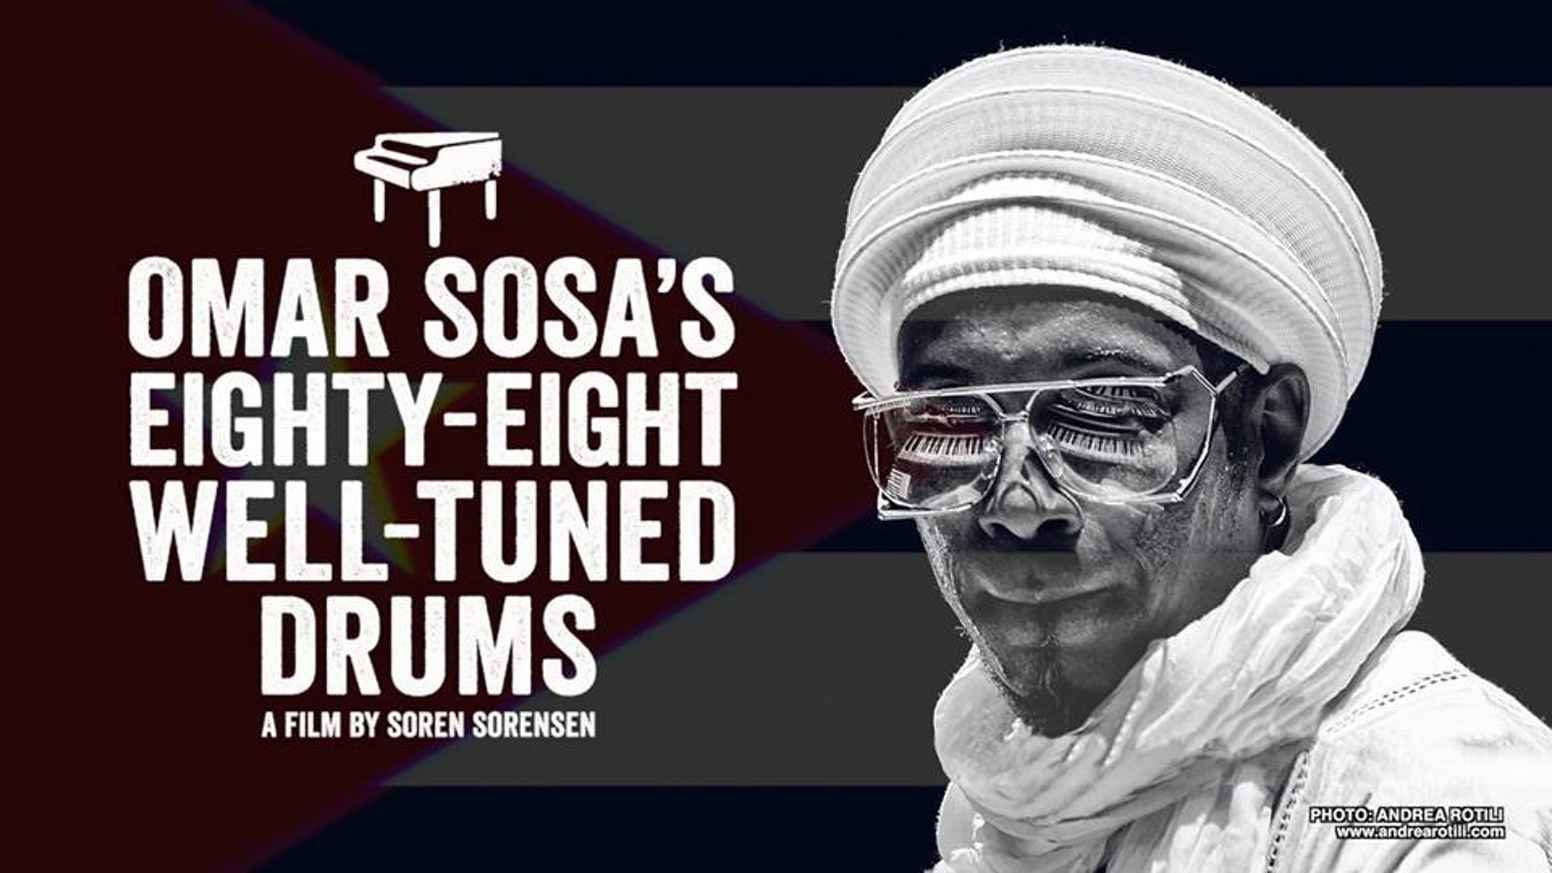 Thanks to our backers, we can now finish this film on the life and music of pianist and composer, OMAR SOSA!